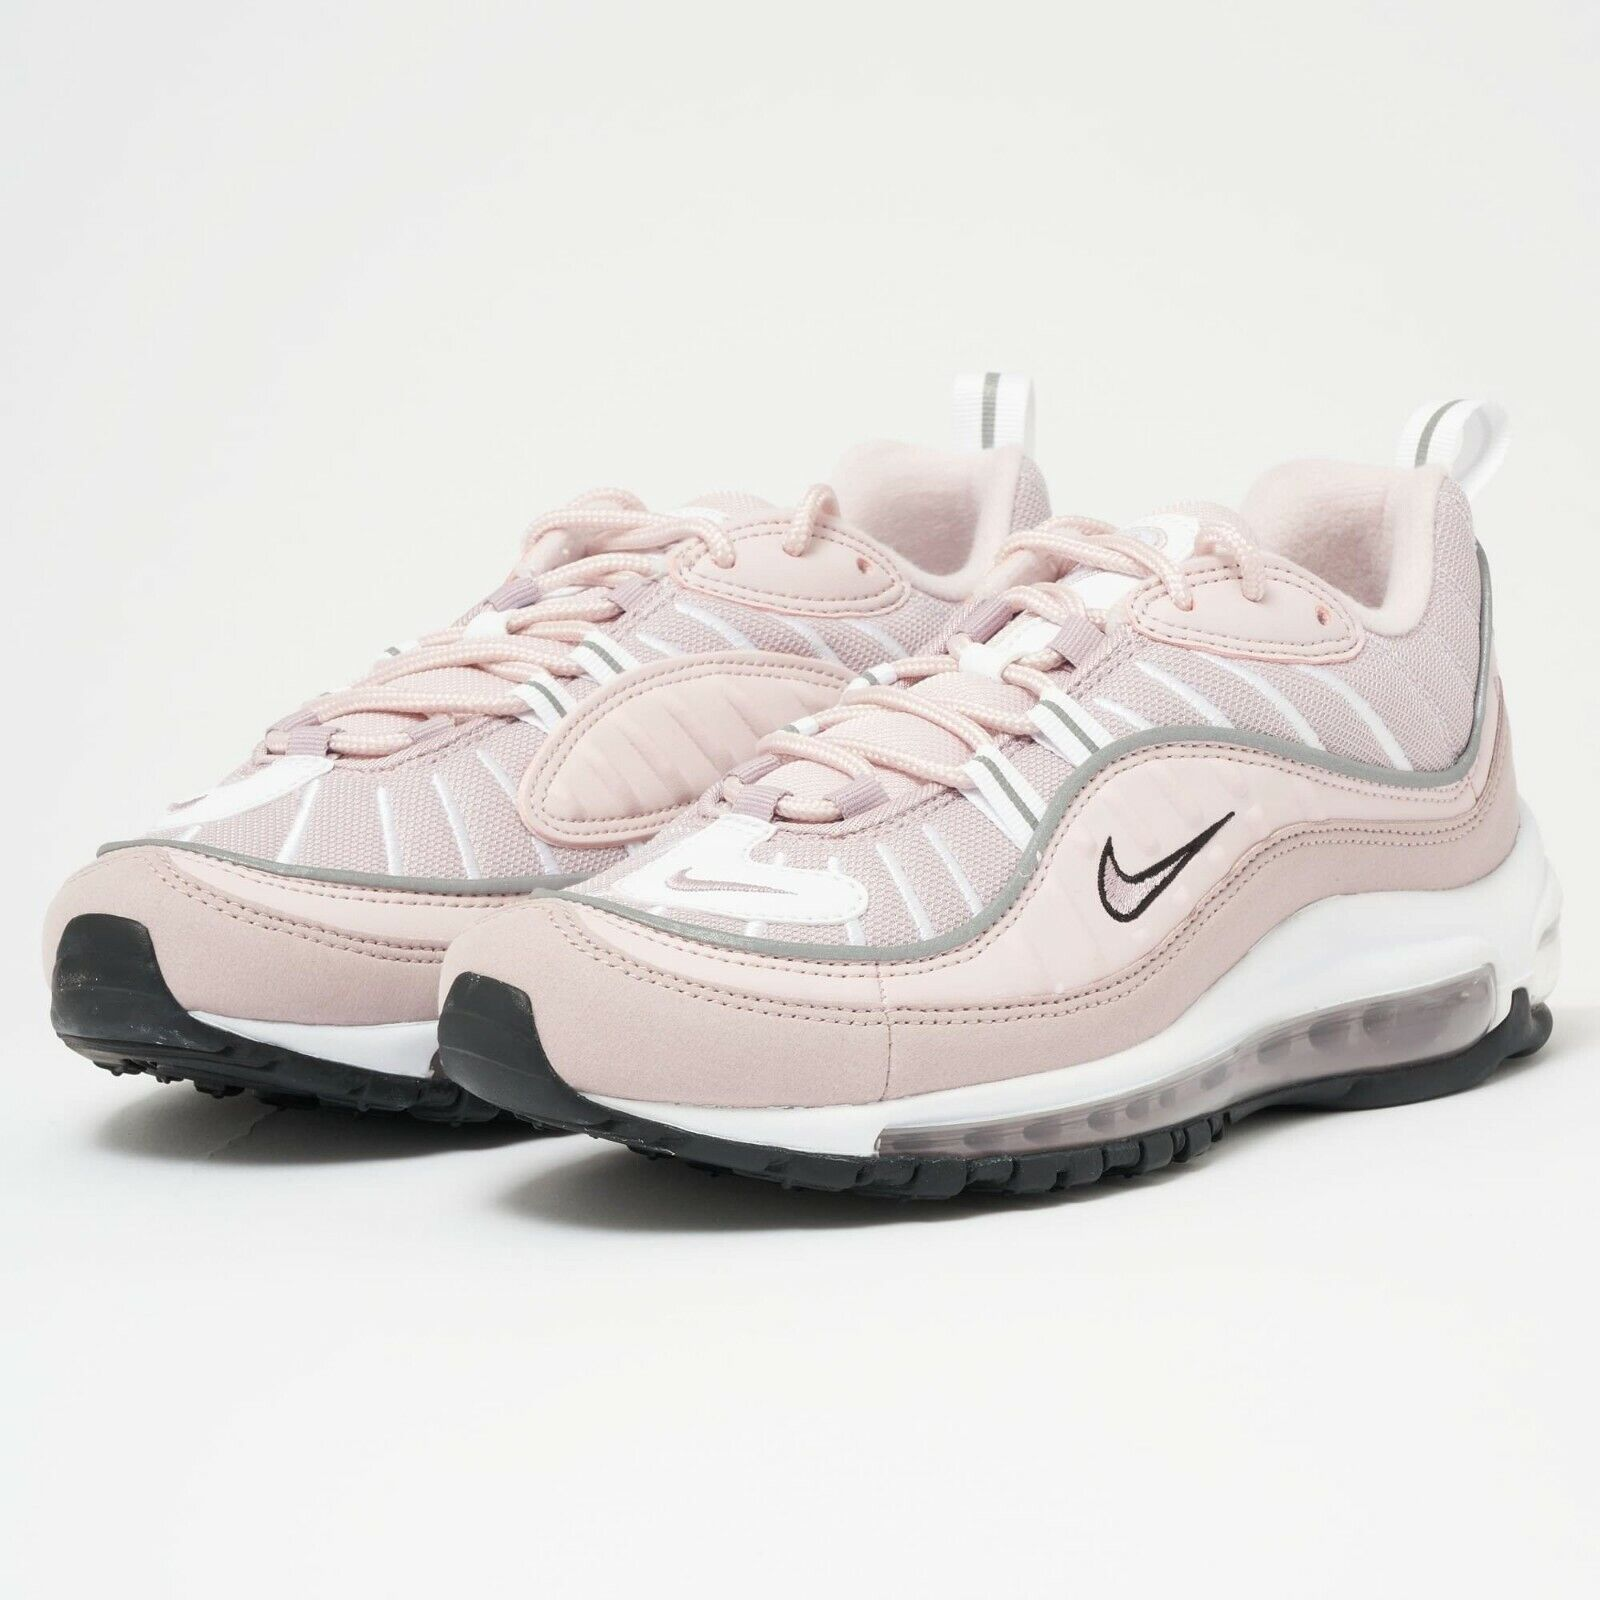 2018 WMNS Nike Air Max 98 SZ 8 Barely pink Elemental pink AH6799-600